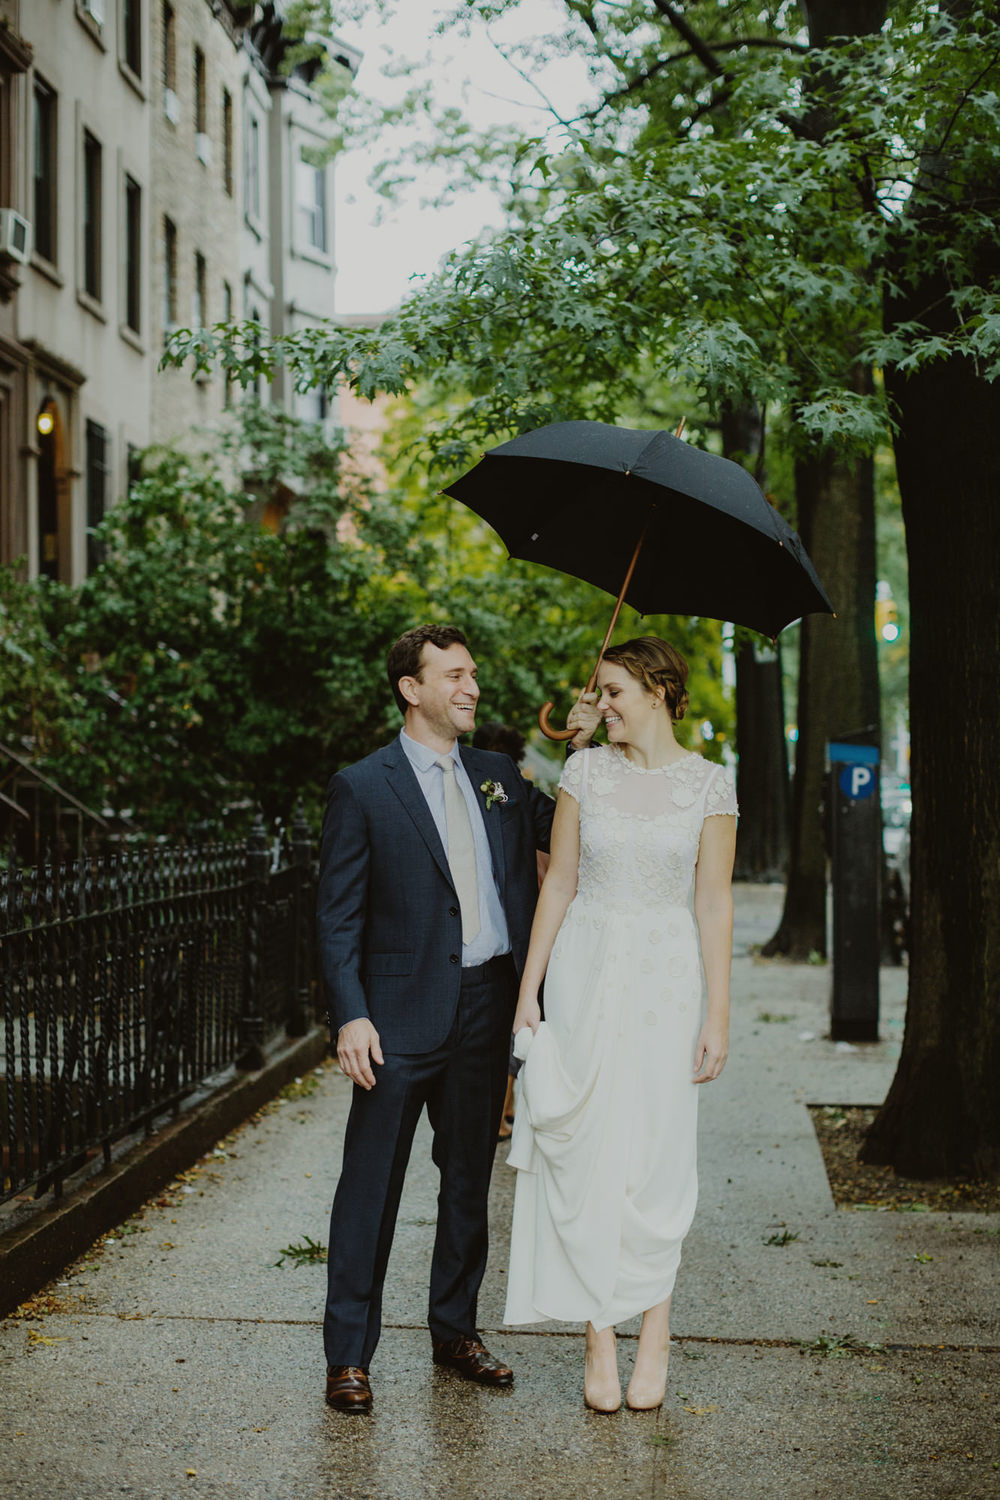 brooklyn_wedding_flatbushfarm_sammblake_020.jpg